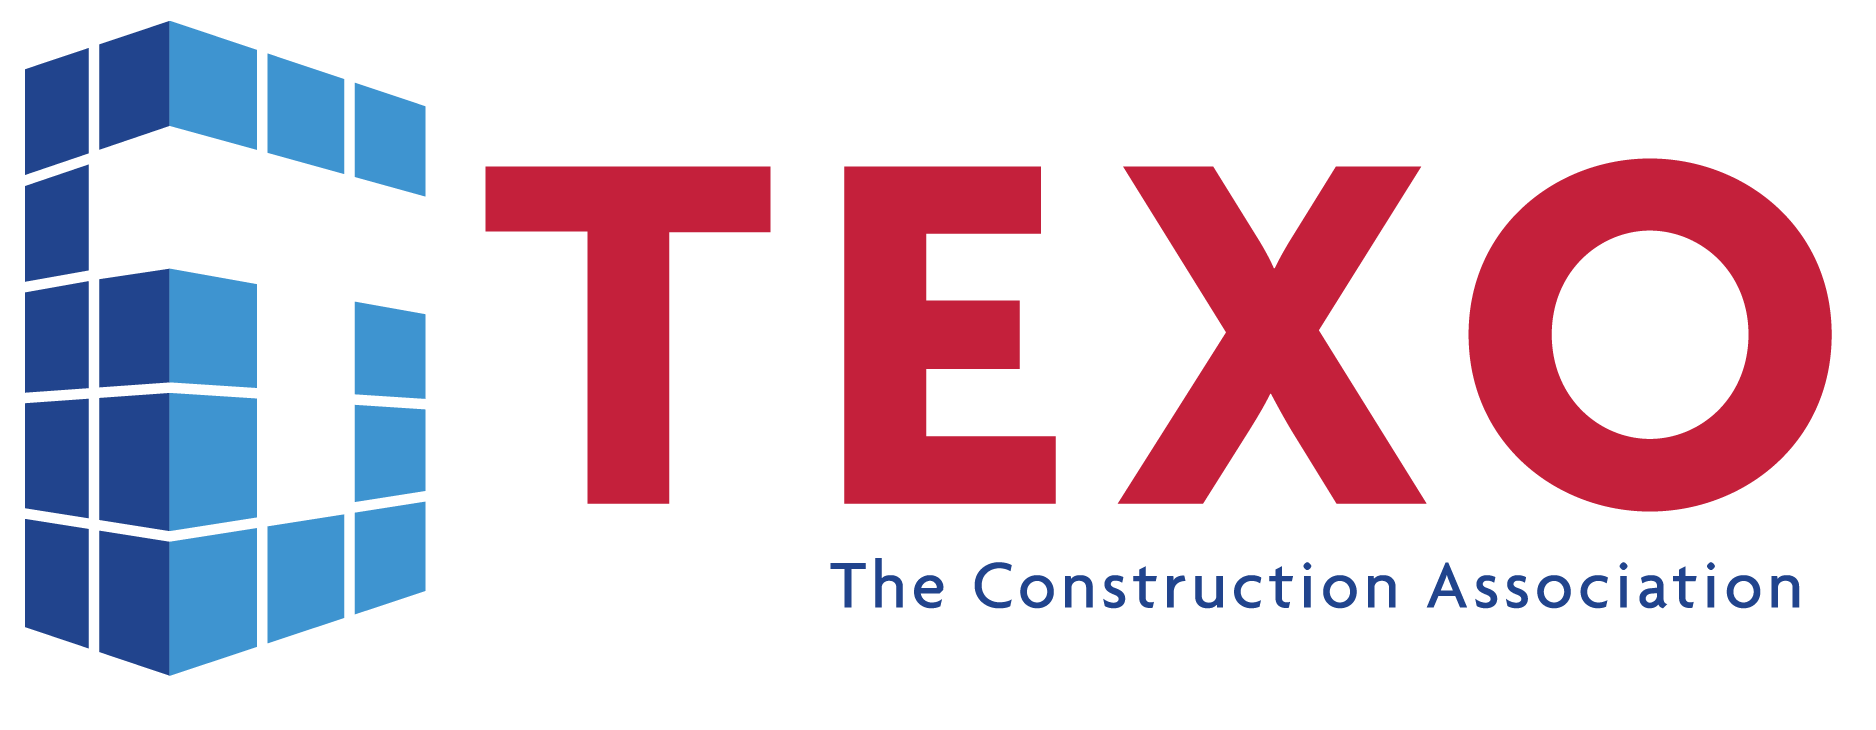 Texo Construction Association